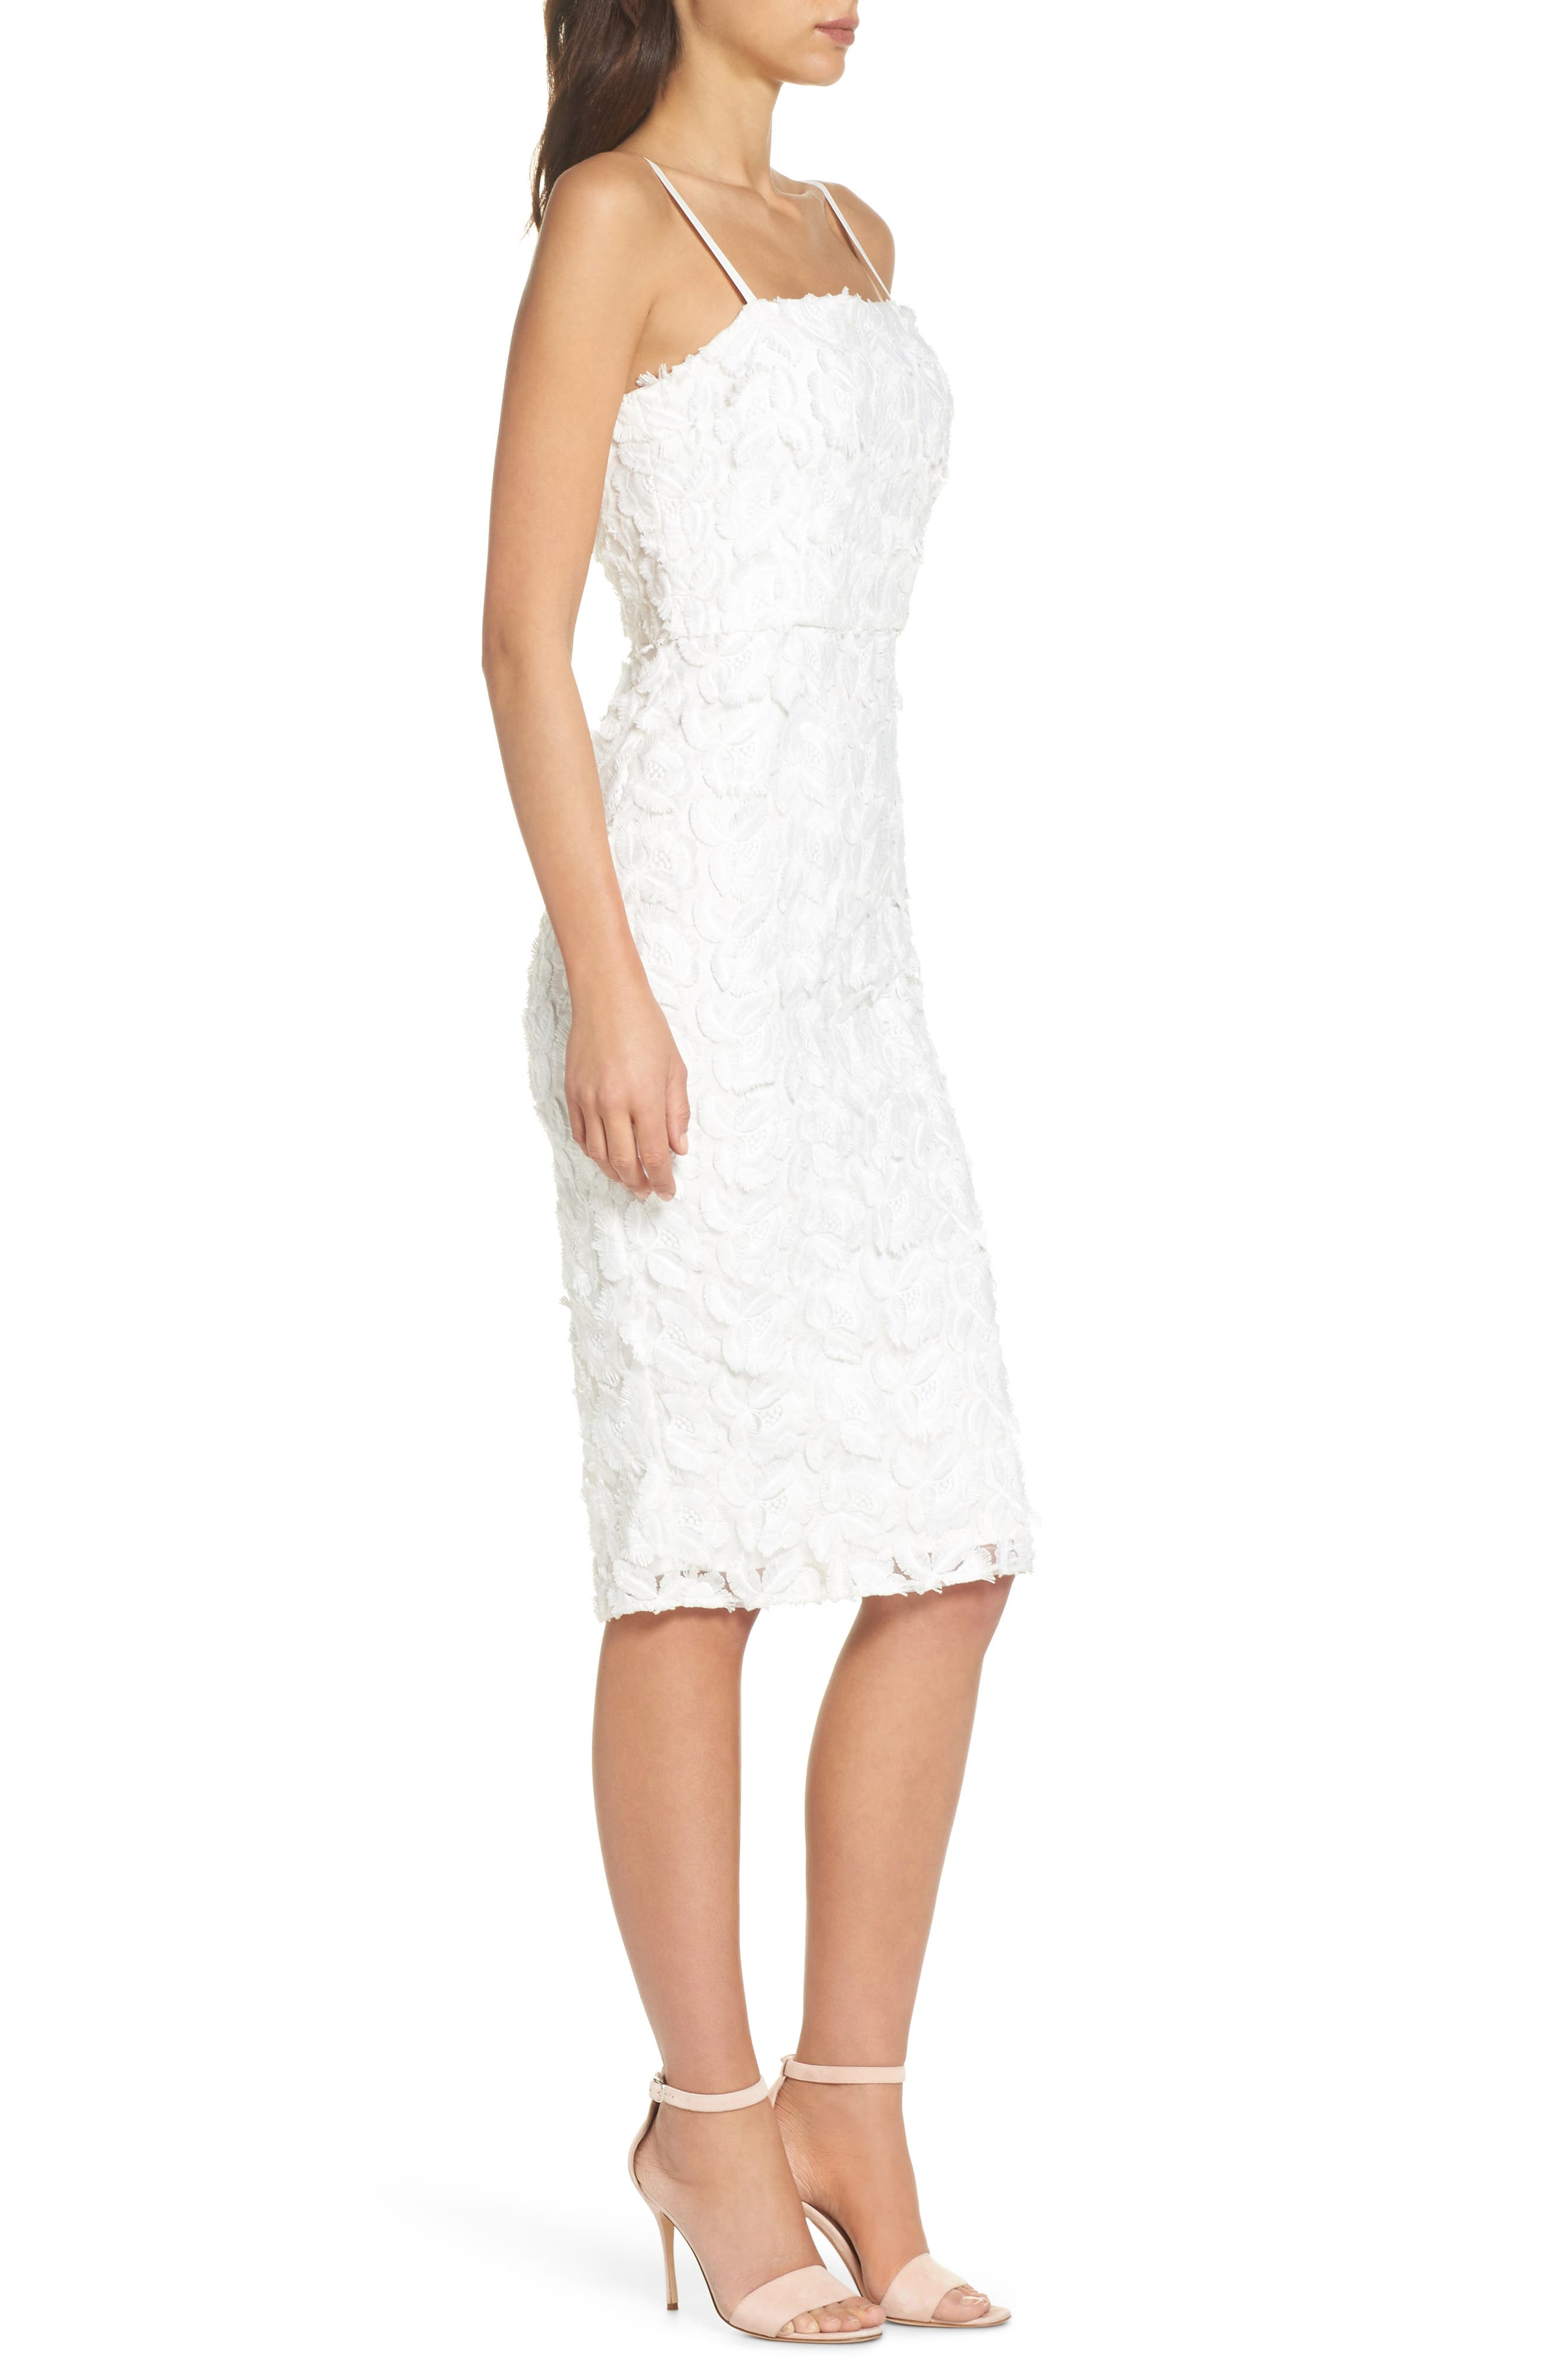 Floral Mirage Embroidered Lace Dress,                             Alternate thumbnail 3, color,                             Gardenia